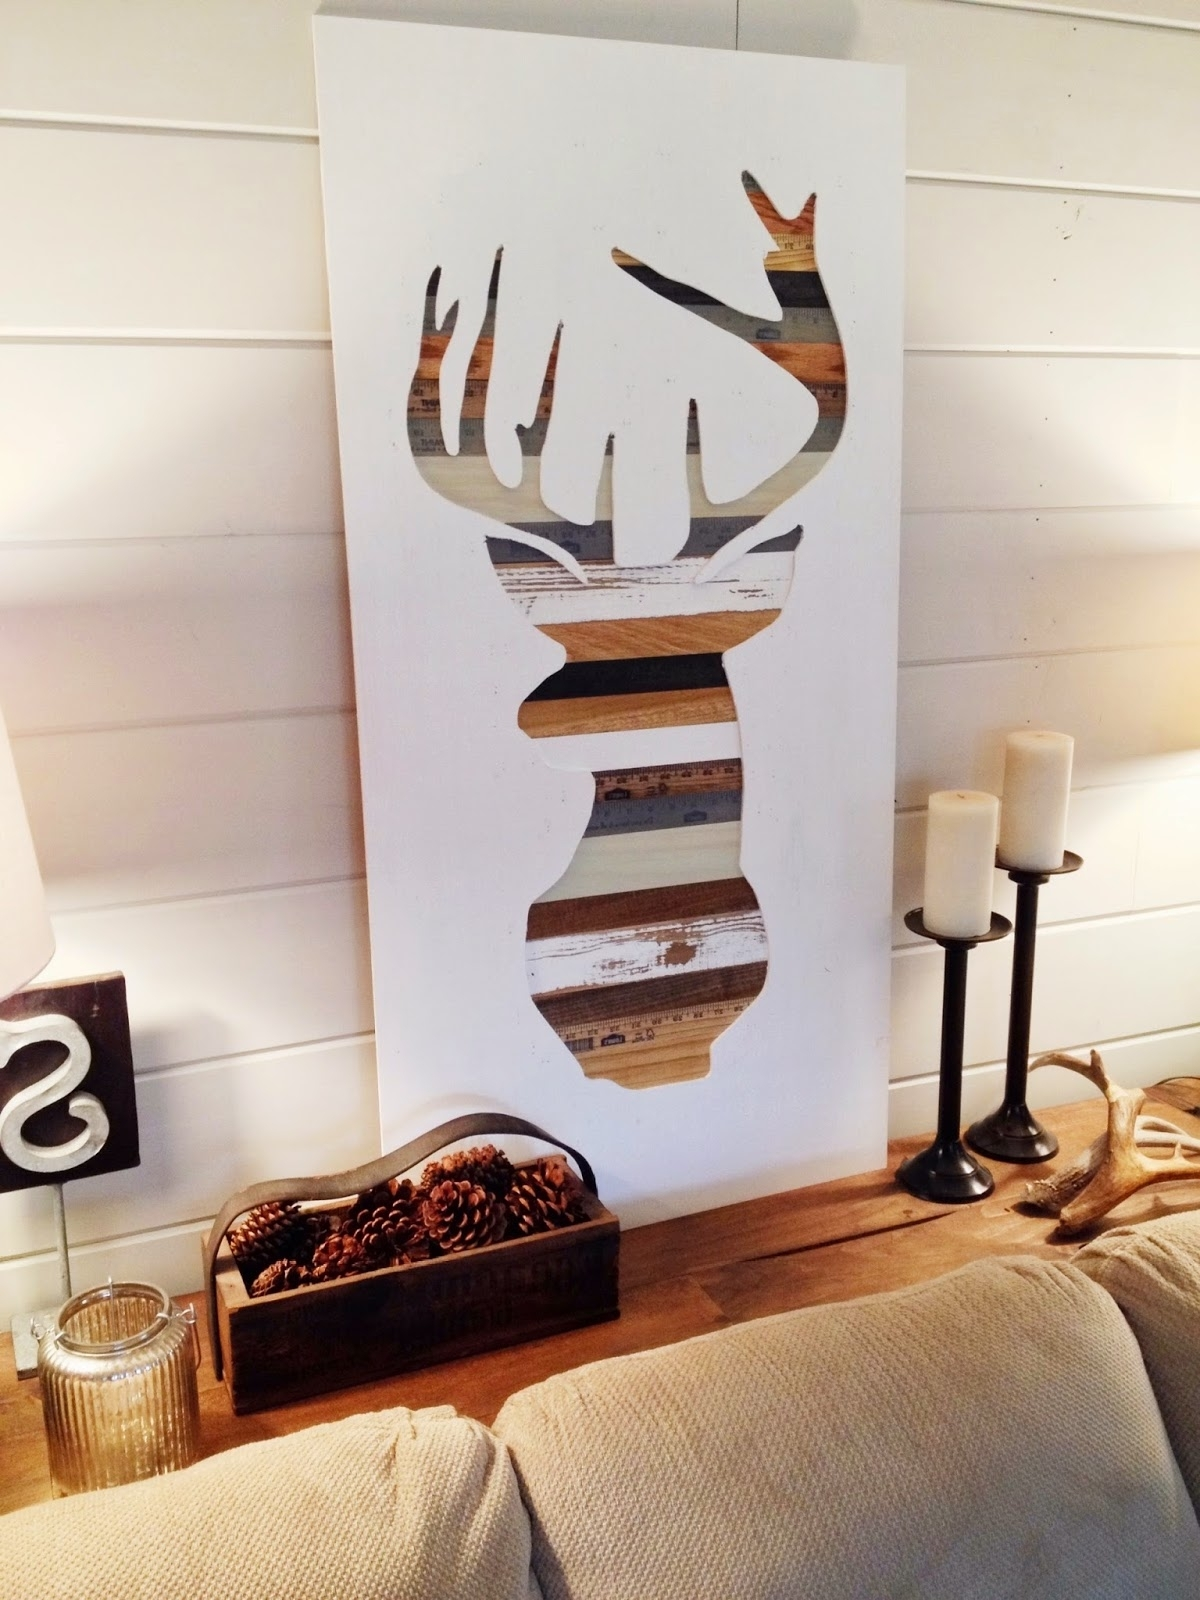 2017 Diy Wood Wall Art Projects – Sand And Sisal Throughout Diy Wood Wall Art (View 4 of 15)